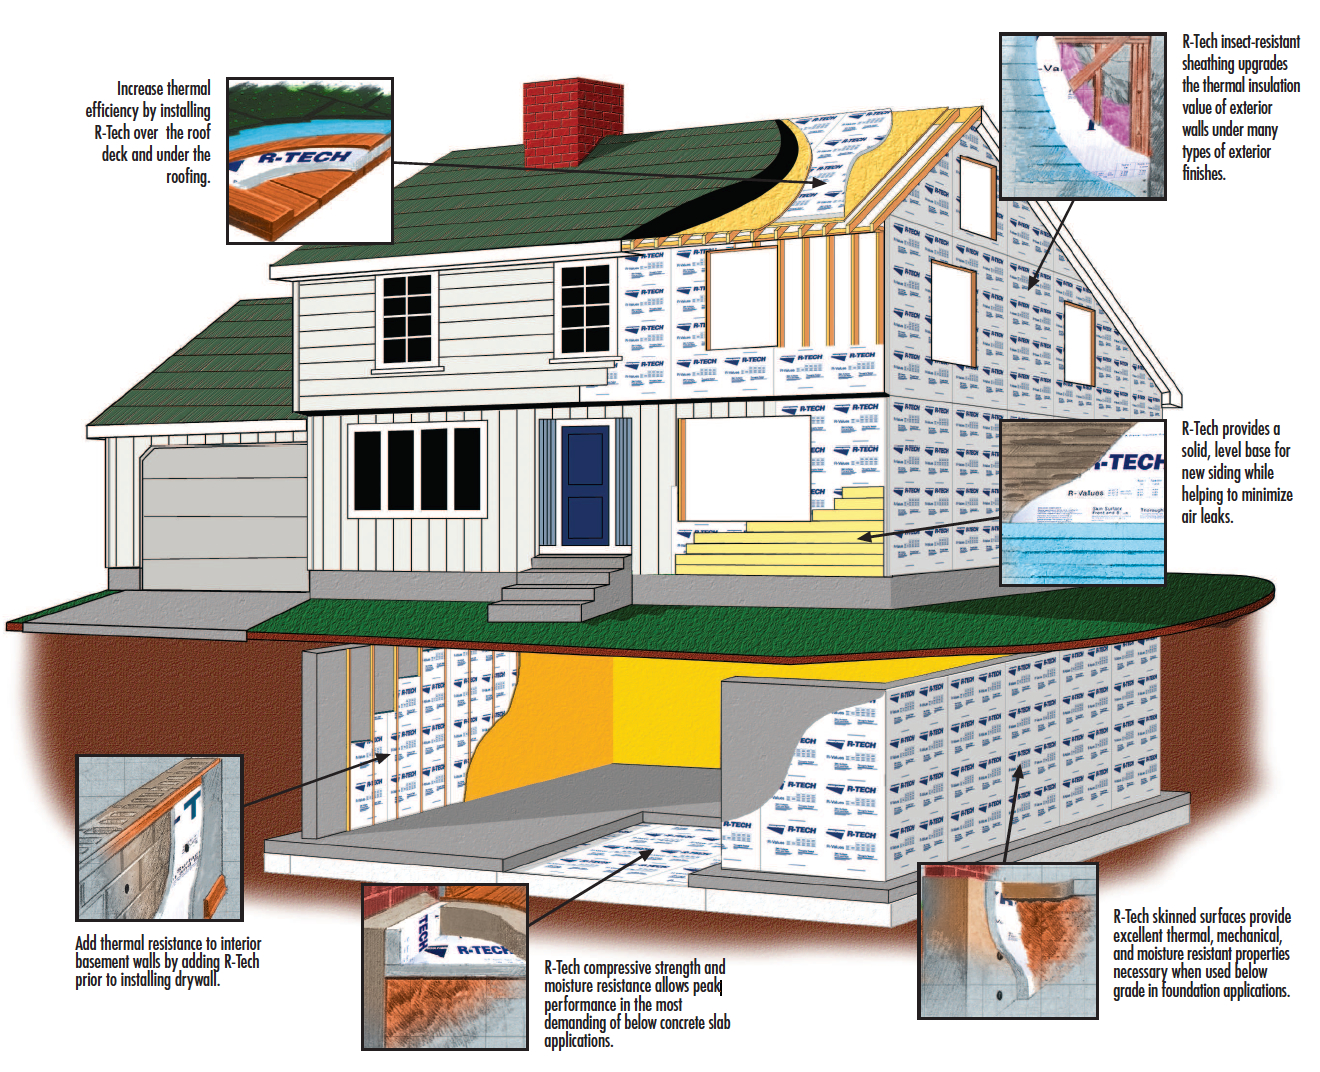 Home insulation solutions insulfoam residential insulation for New home insulation